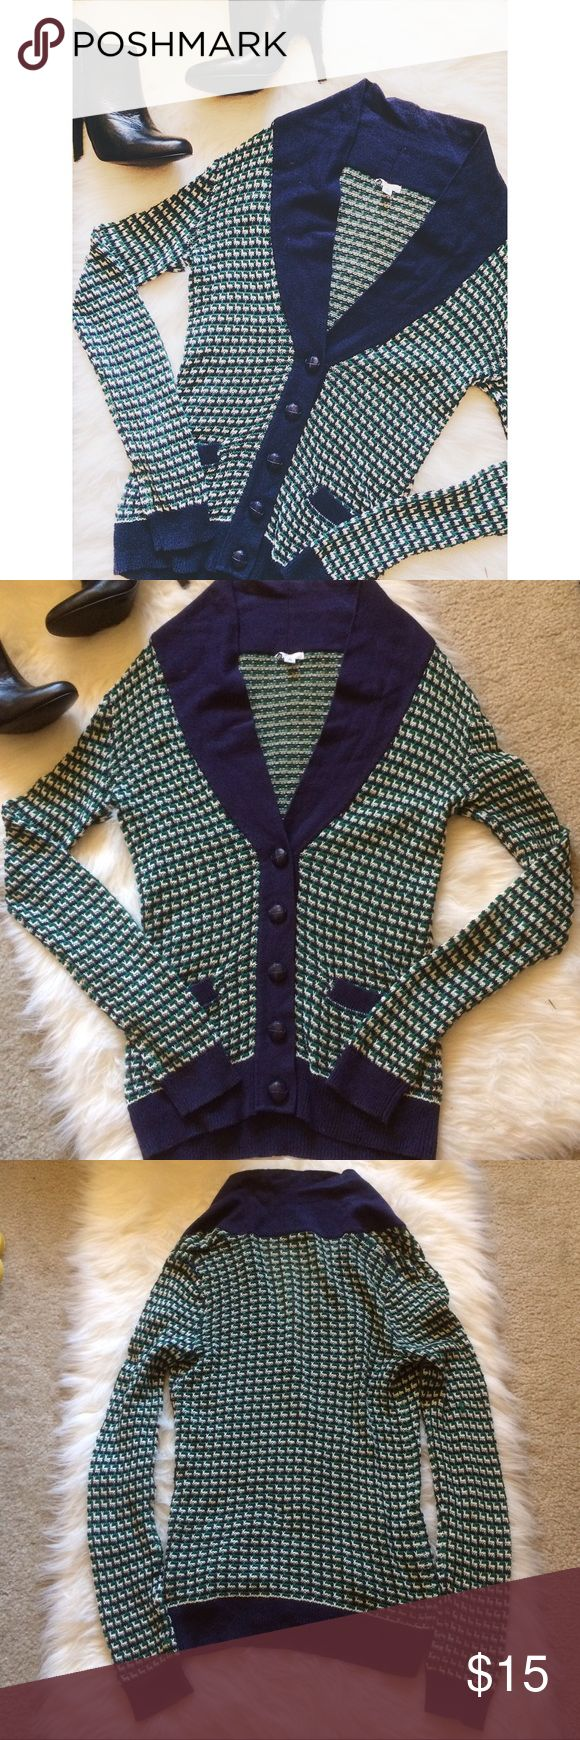 • bp • Blue & Green Sweater Cardigan This cardigan is perfect for a chilly night! It's fairly thin. Flaws shown above. 100% Cotton. 0703170med.  ✅Reasonable offers welcome! (**I usually don't counter-offer, so please make your highest offer 😊) ✅BUNDLE DISCOUNTS! 🚫No trades/paypal/other apps. Nordstrom Sweaters Cardigans